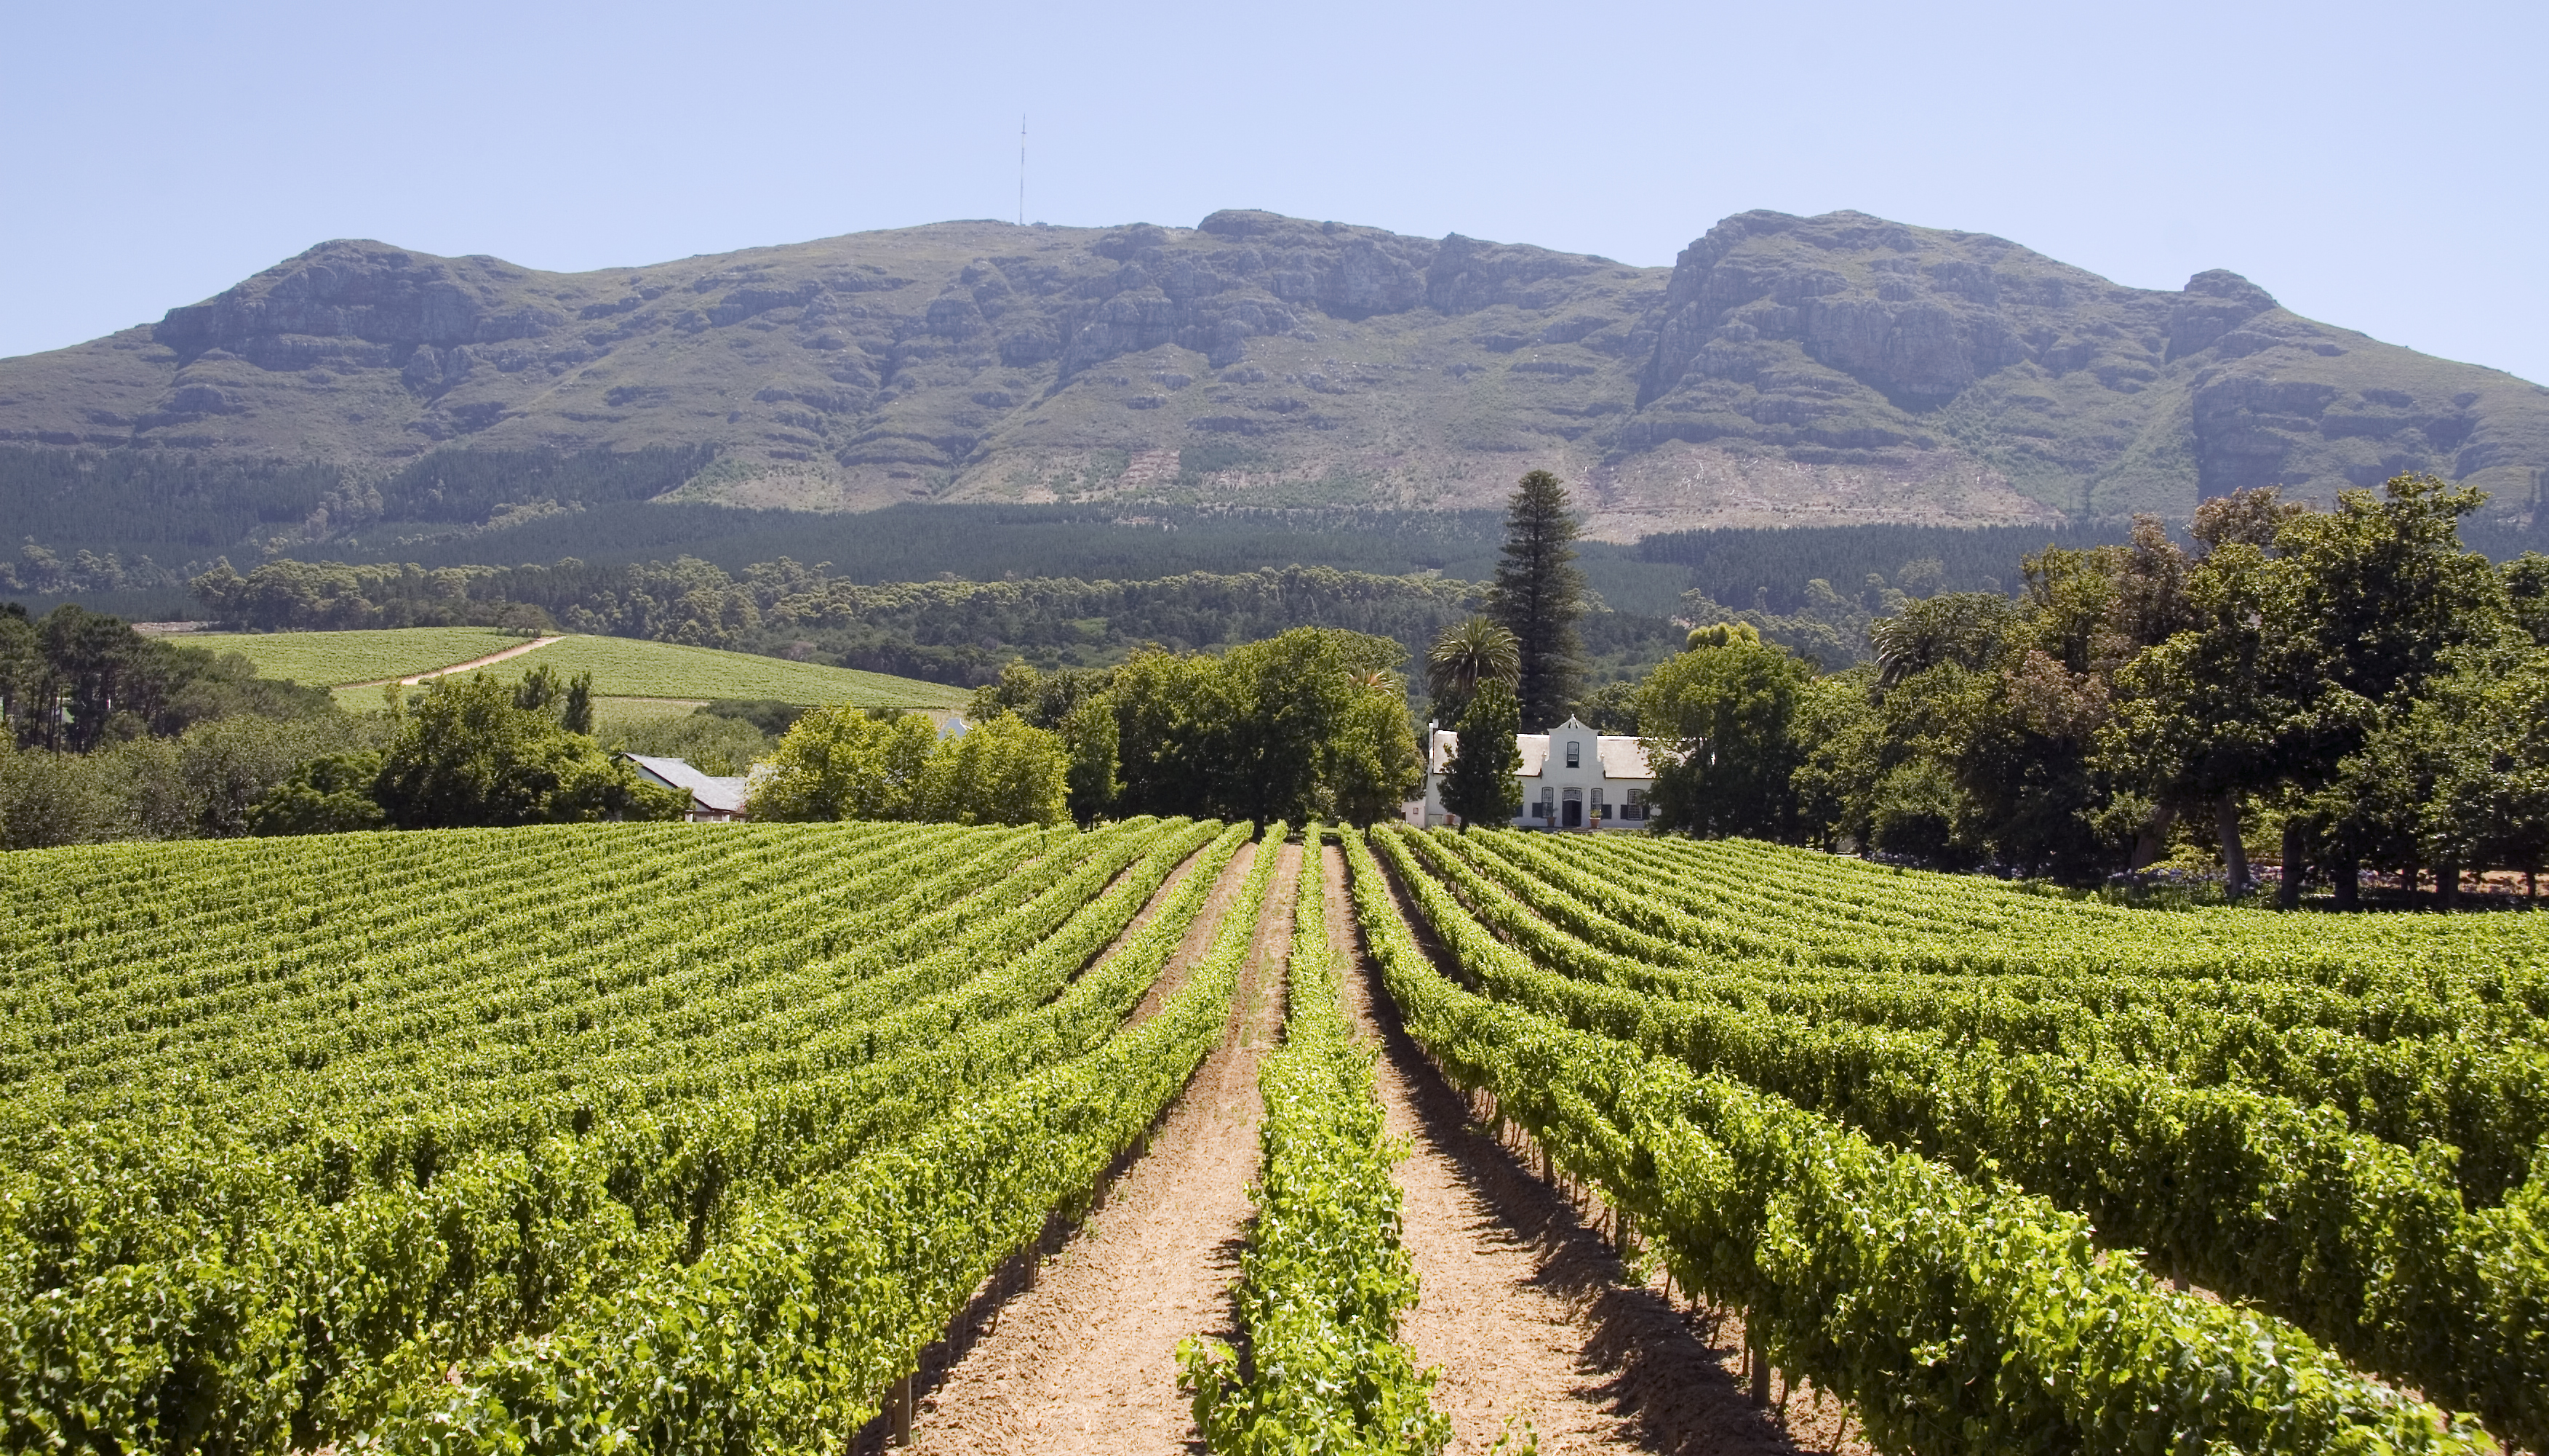 Panoramic view of a winery in South Africa